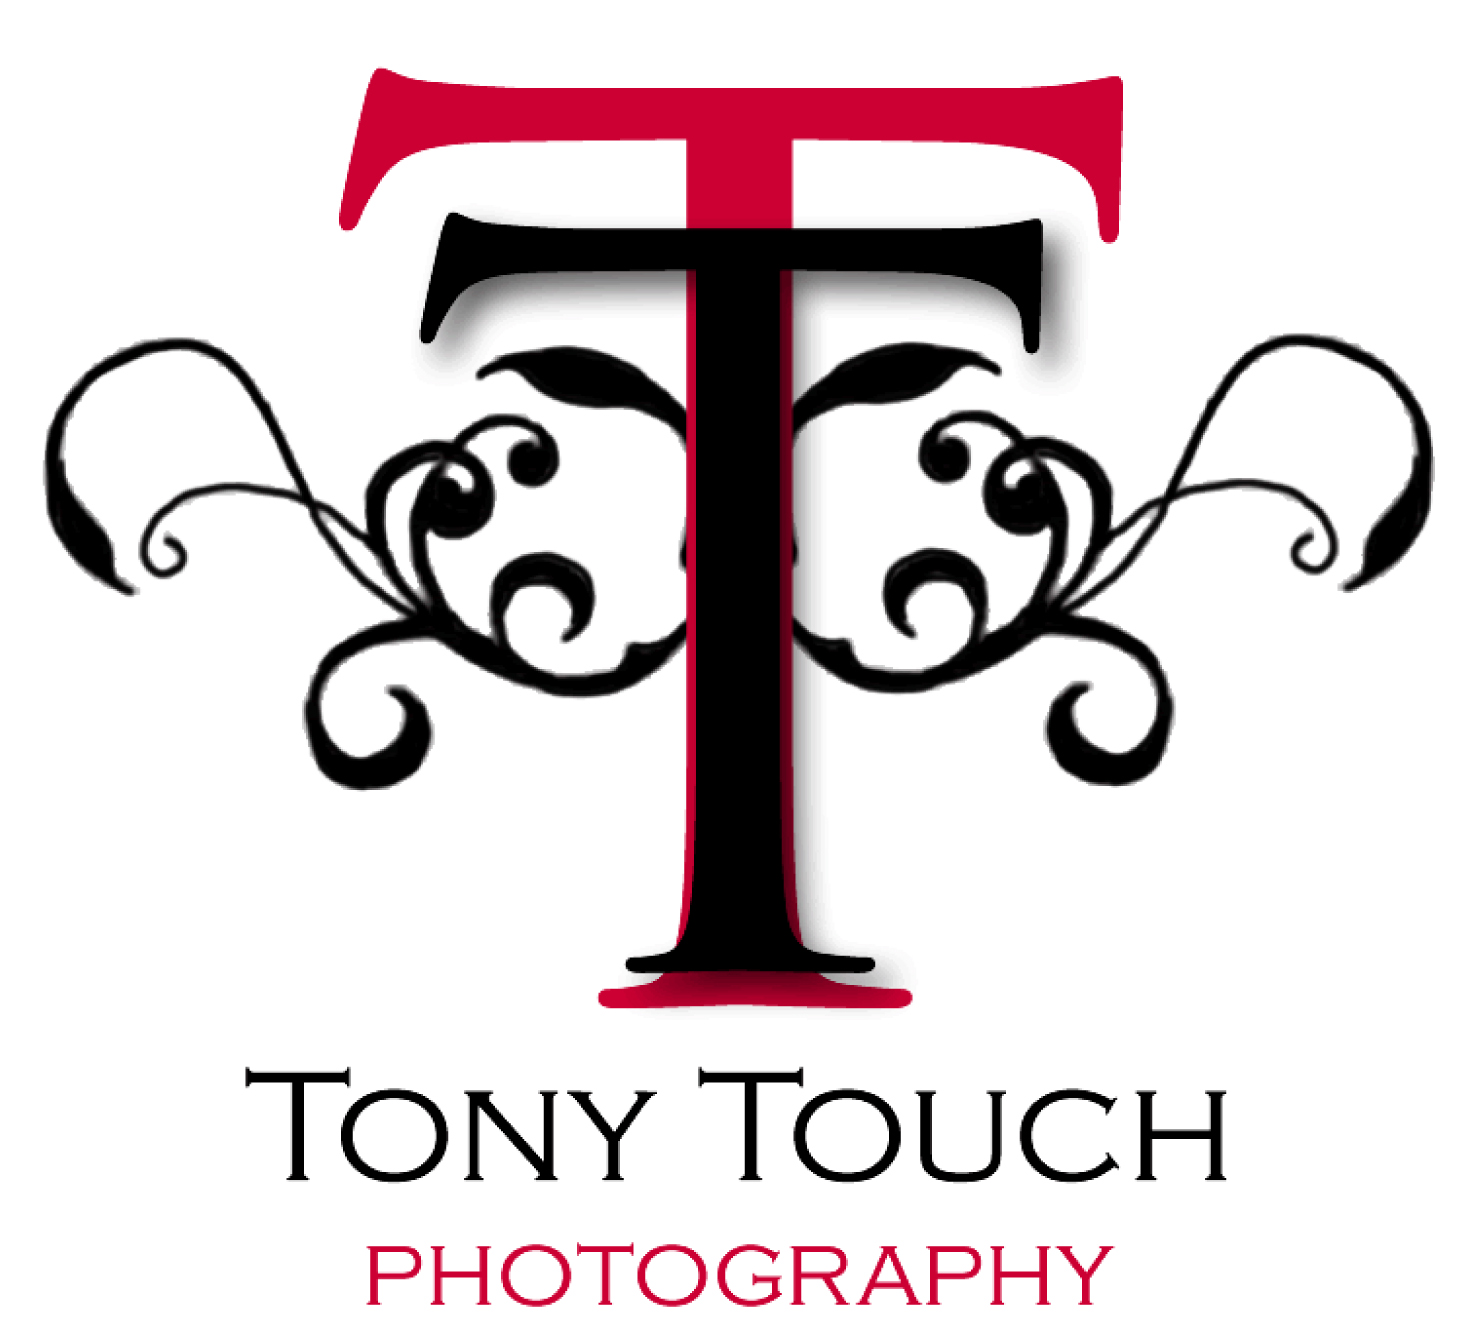 Tony Touch Photography